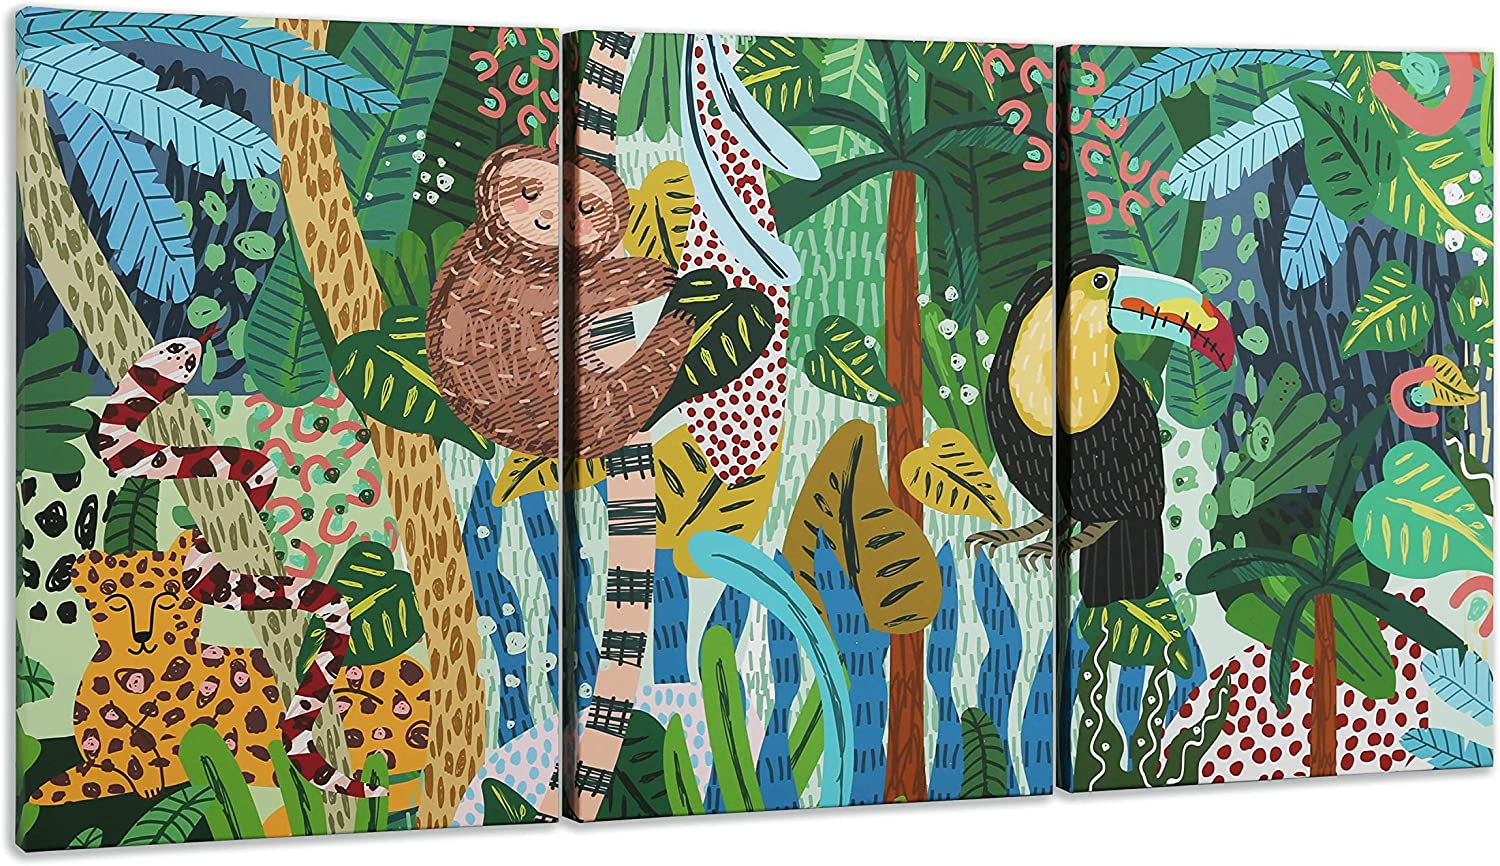 Hand Drawn Colorful Abstract Jungle Animals Wall Art Decor | Unique Hanging Canvas Print | Unframed 3 Piece Set | Boys & Girls Bedroom | Baby Nursery Room | Kids Playroom | Home Accent